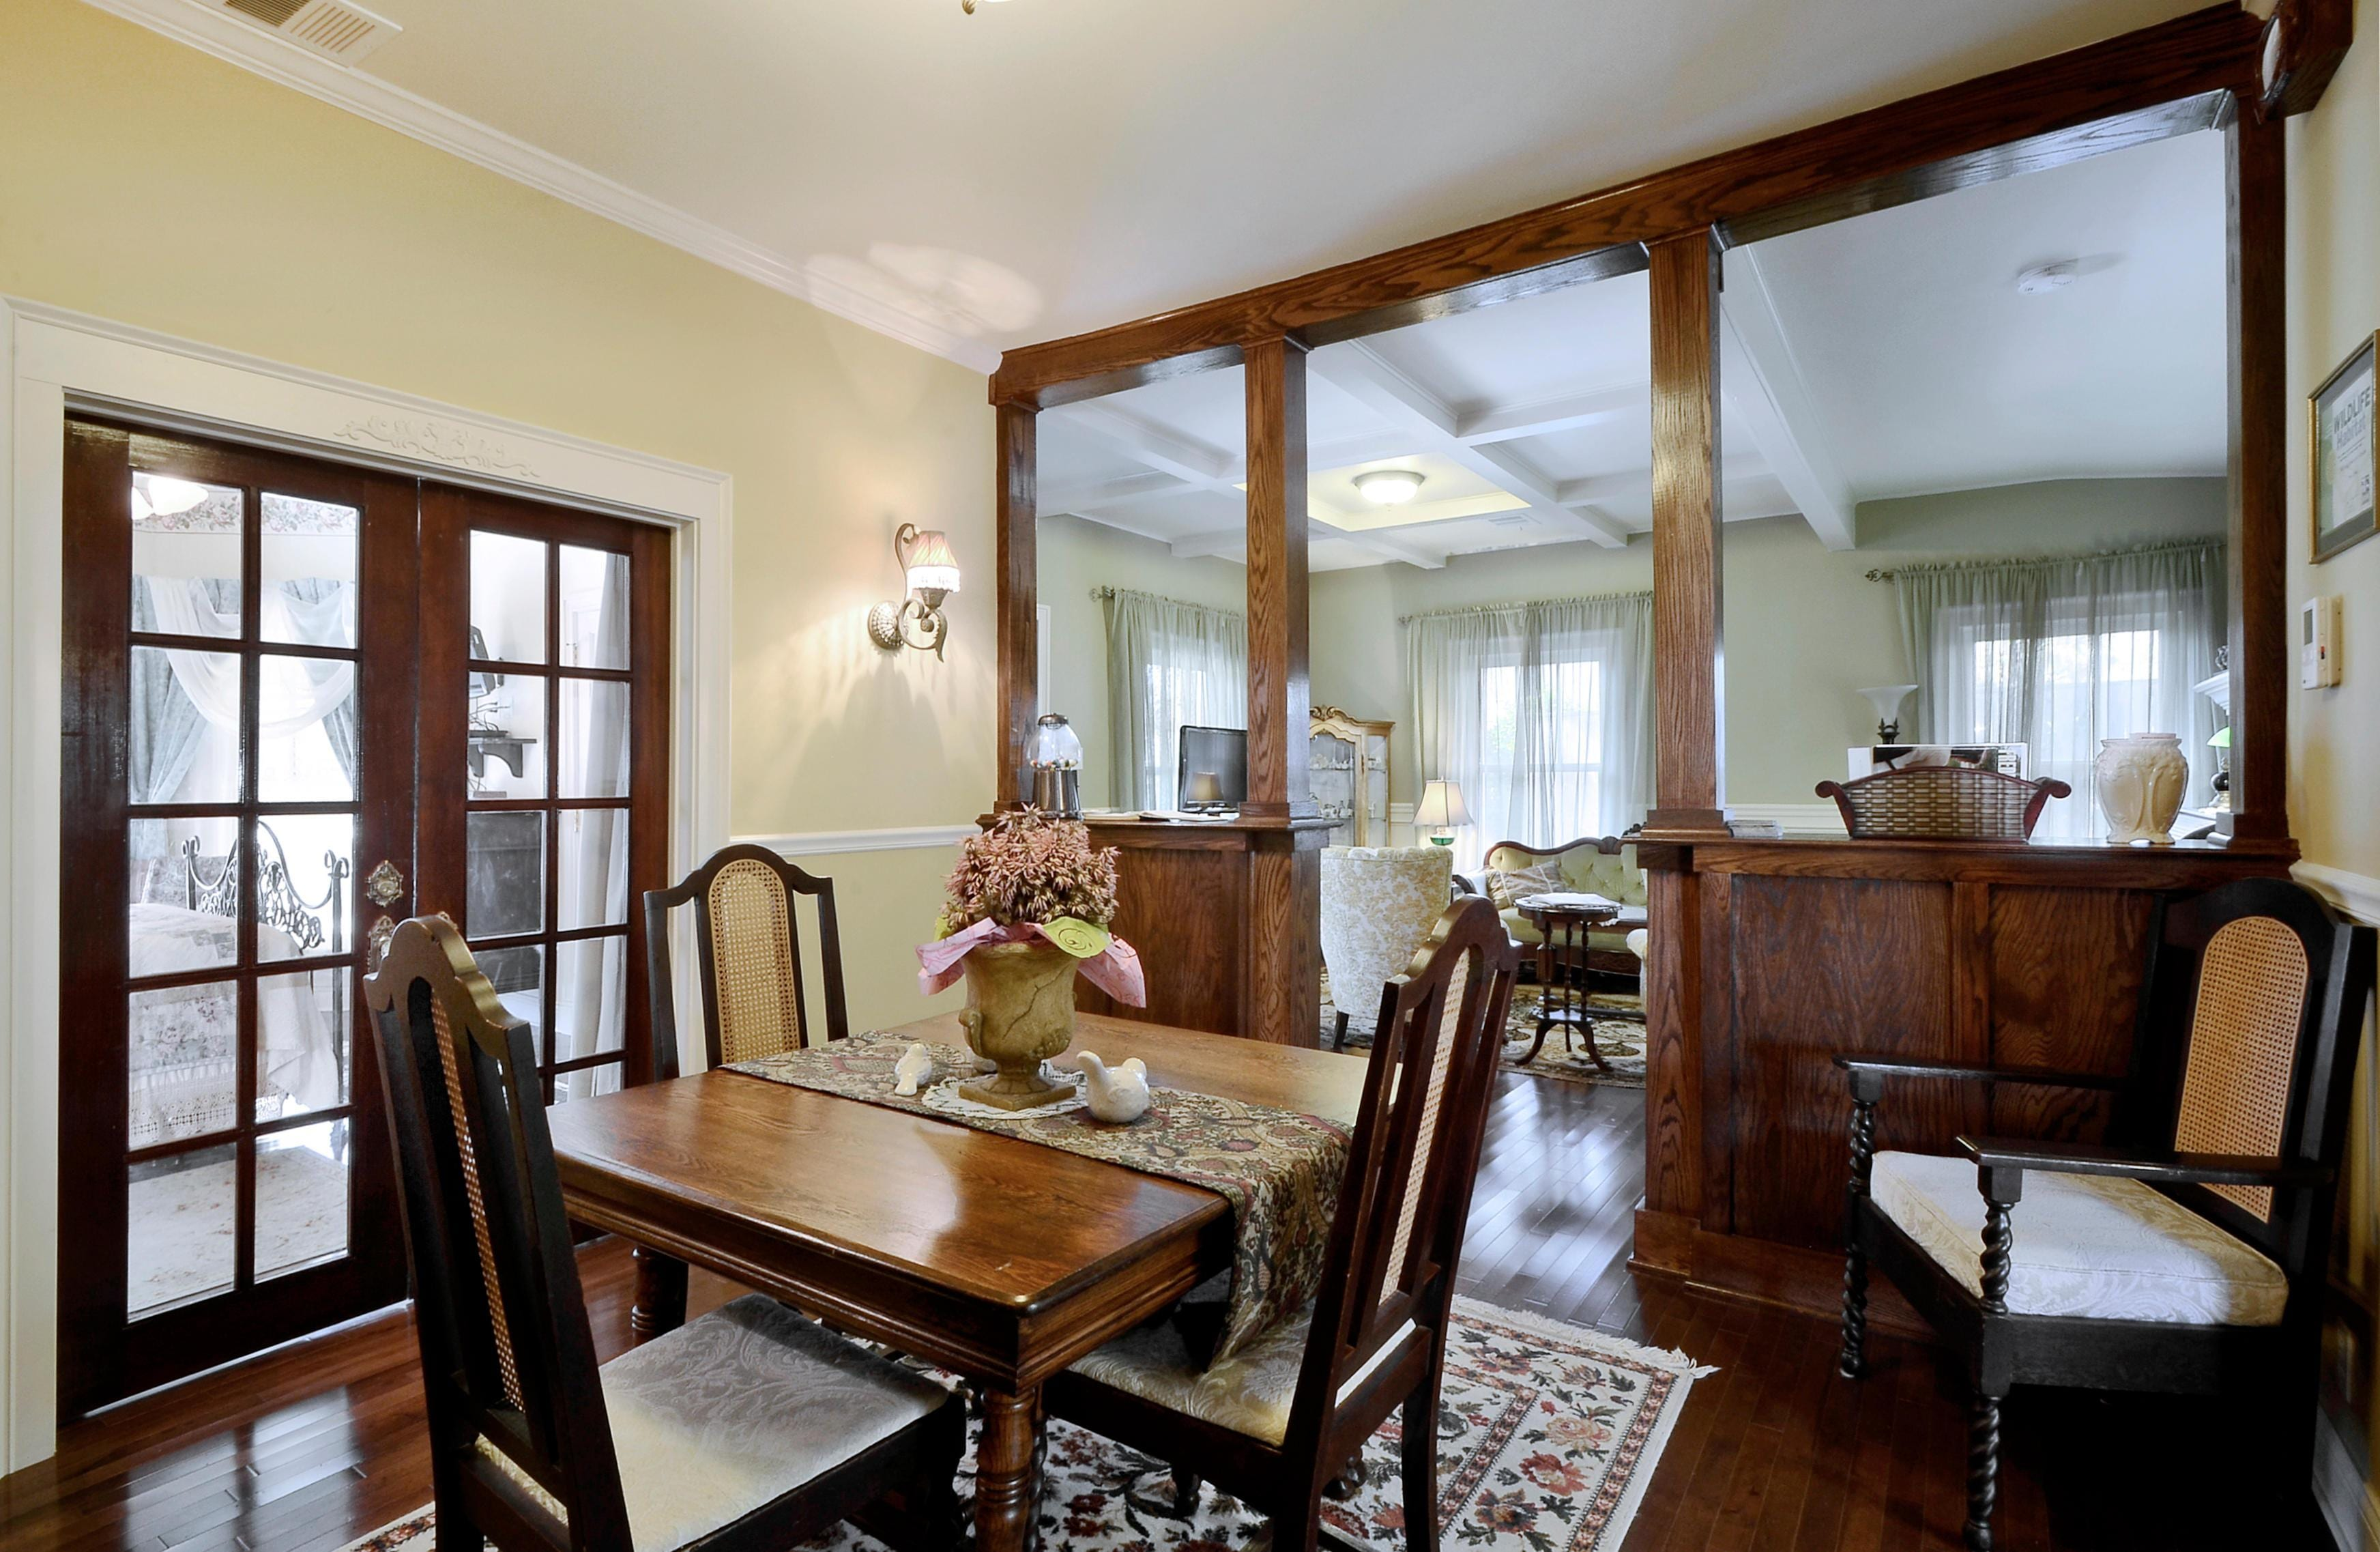 The dining room table is a beautiful antique.